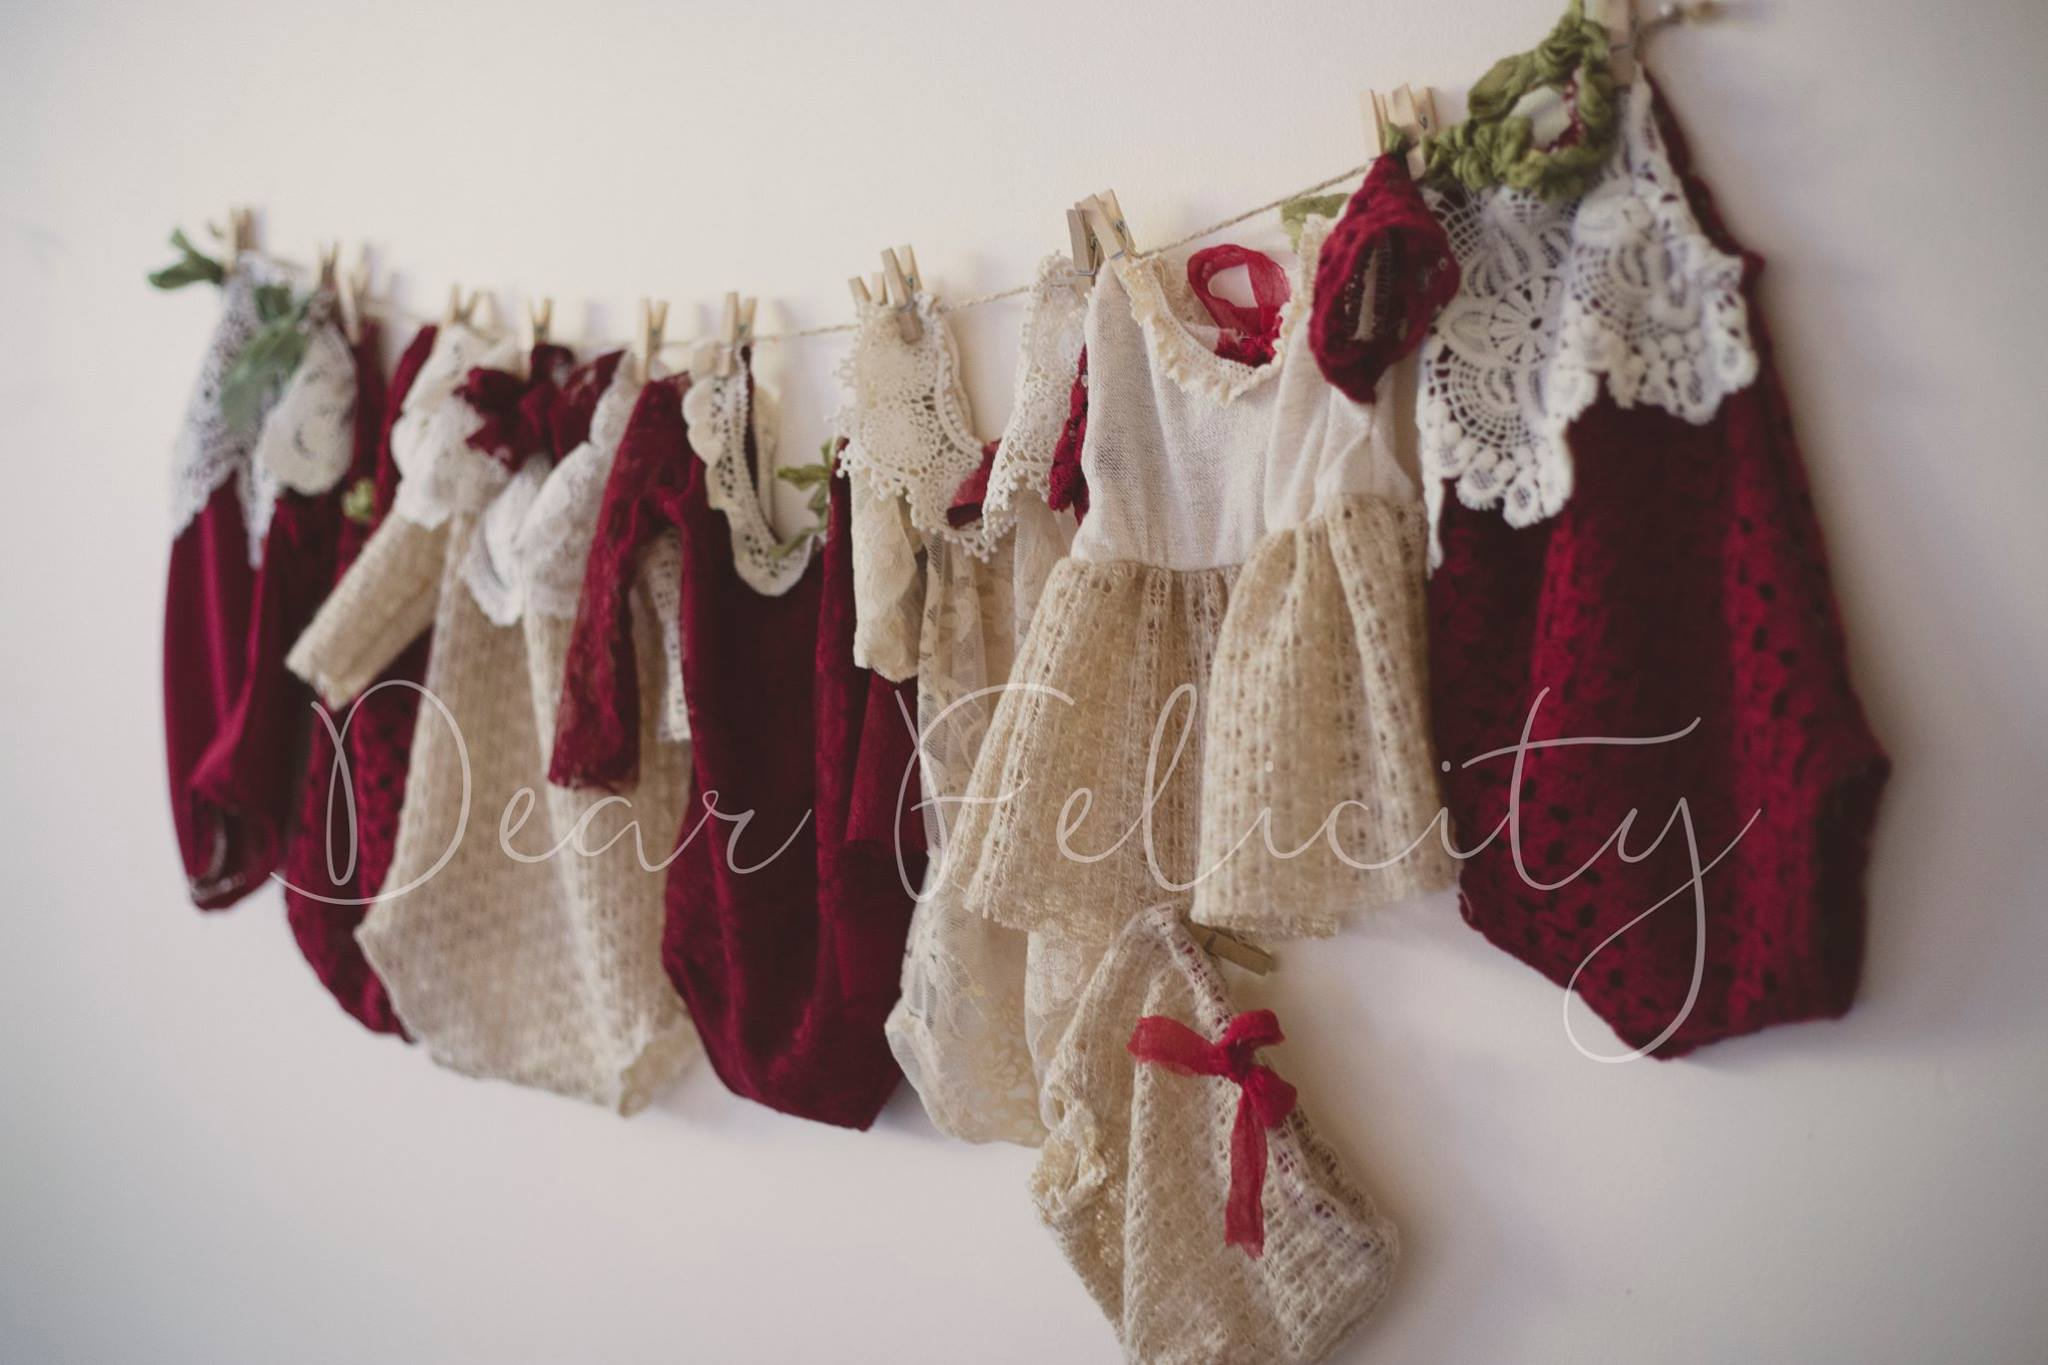 dear-felicity-holiday-photo-props-baby-photography-rompers-canada-christmas-canadian-vendor